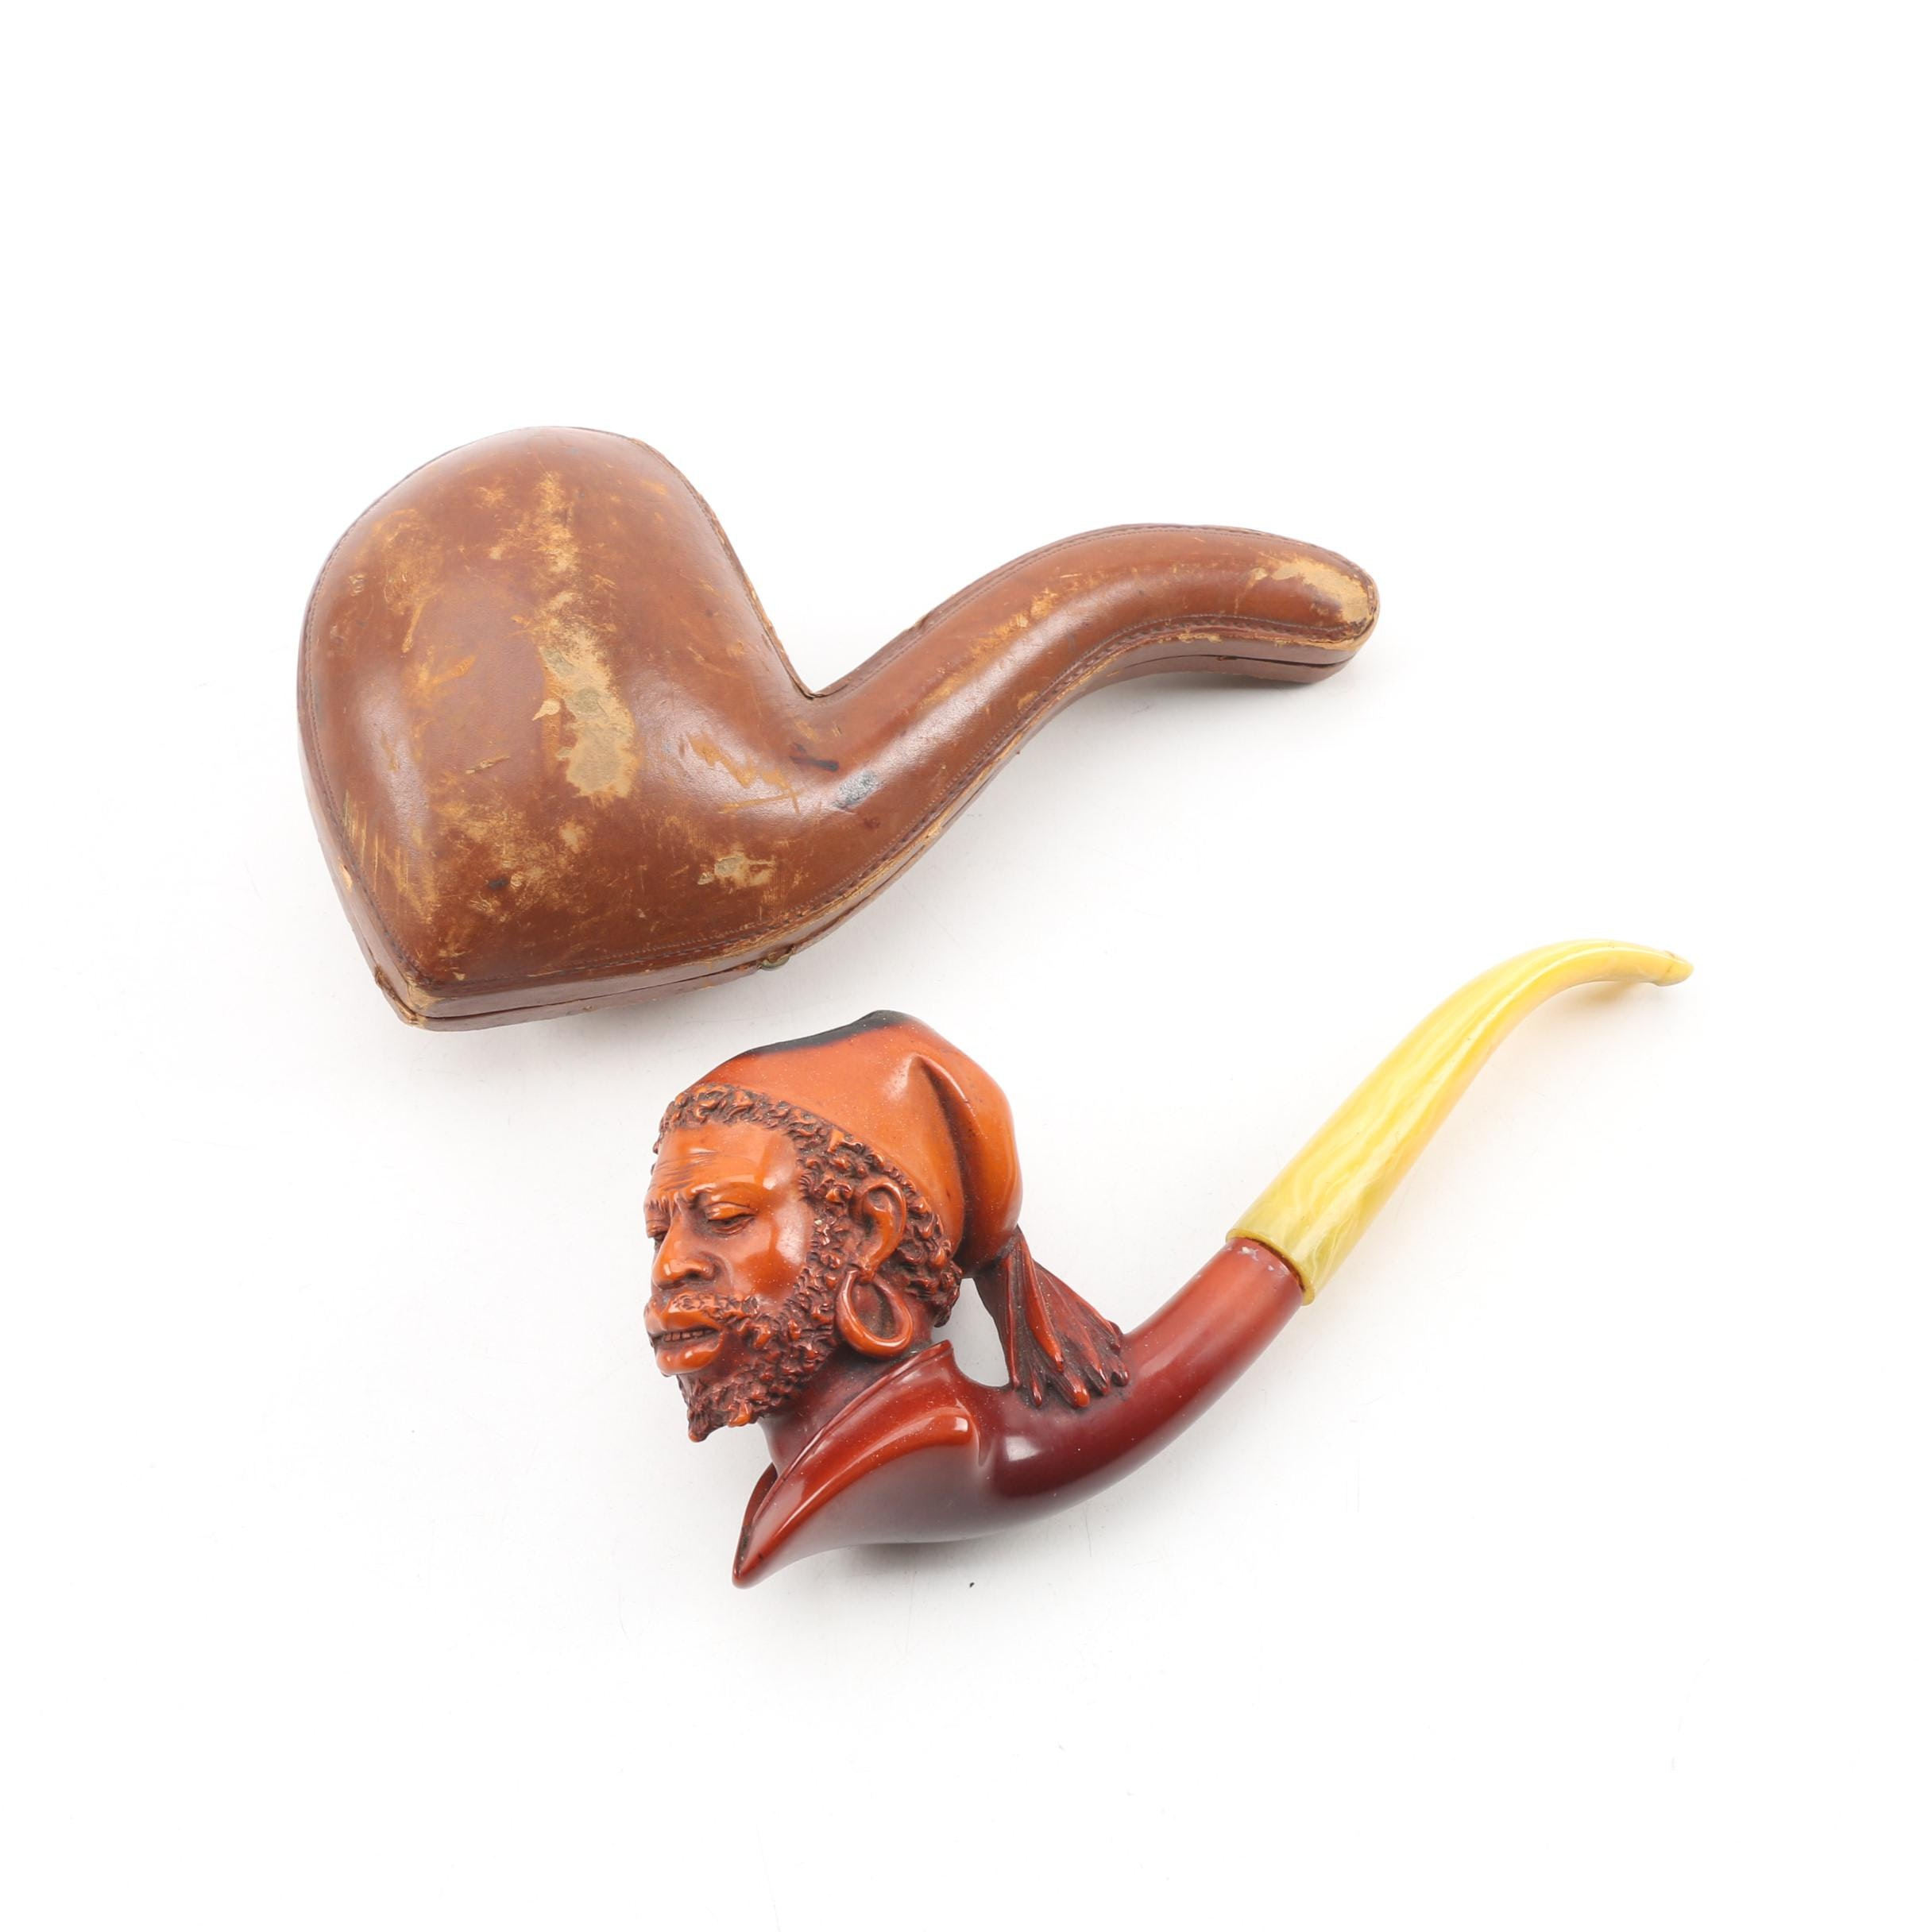 Antique Franz Hiess & Söhne Figural Meerschaum Tobacco Pipe with Leather Case